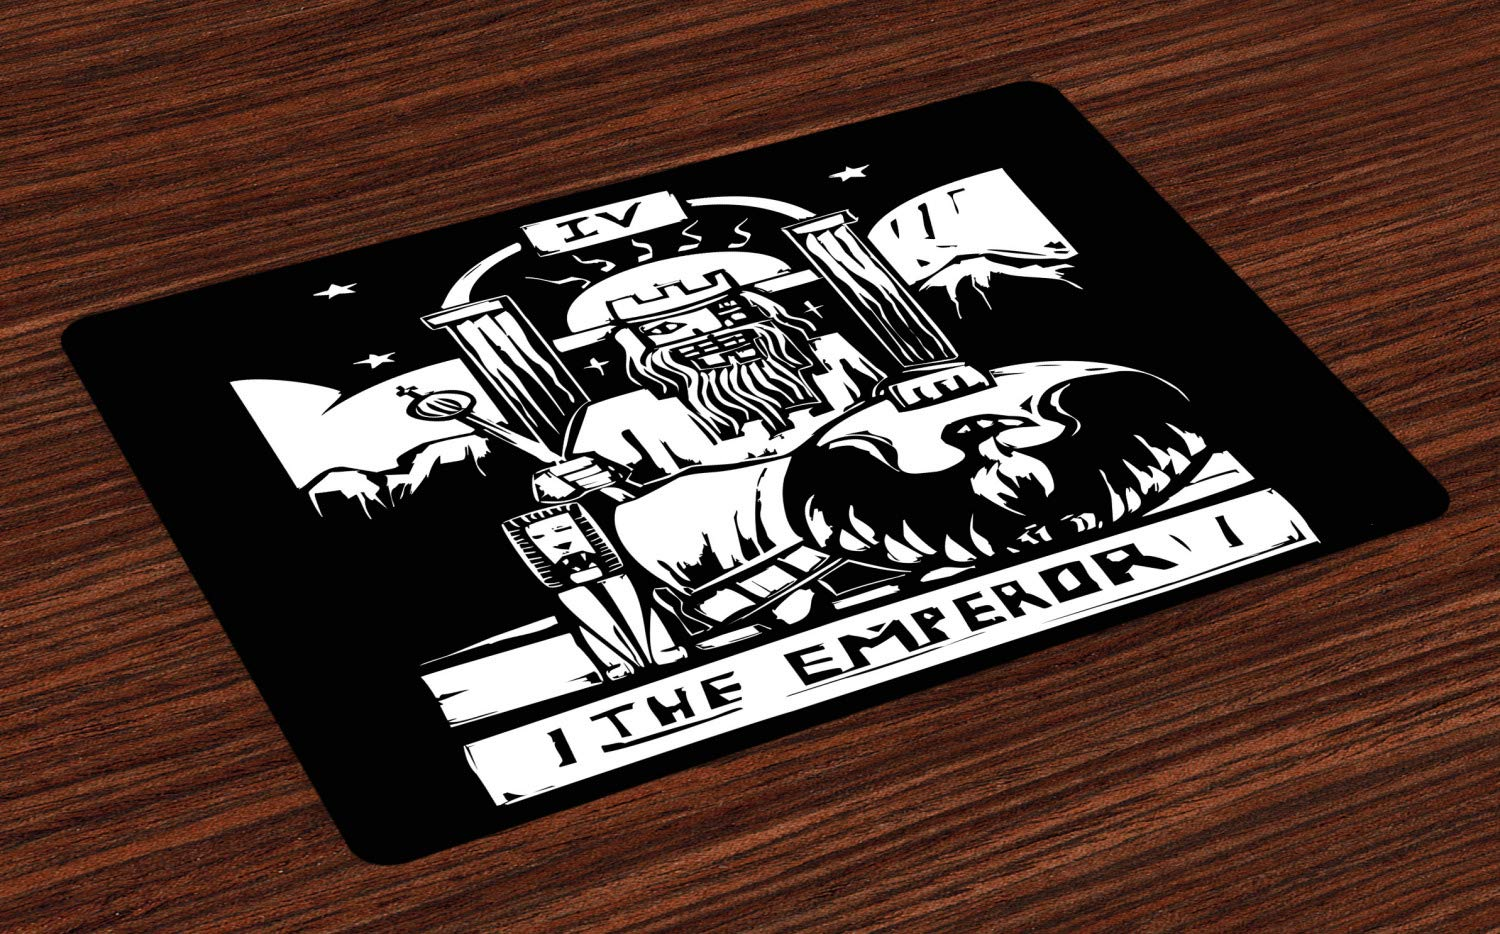 Ambesonne Tarot Place Mats Set of 4, Tarot Card for The Emperor Woodcut Style Illustration Monochromatic Artwork, Washable Fabric Placemats for Dining Room Kitchen Table Decor, Black and White